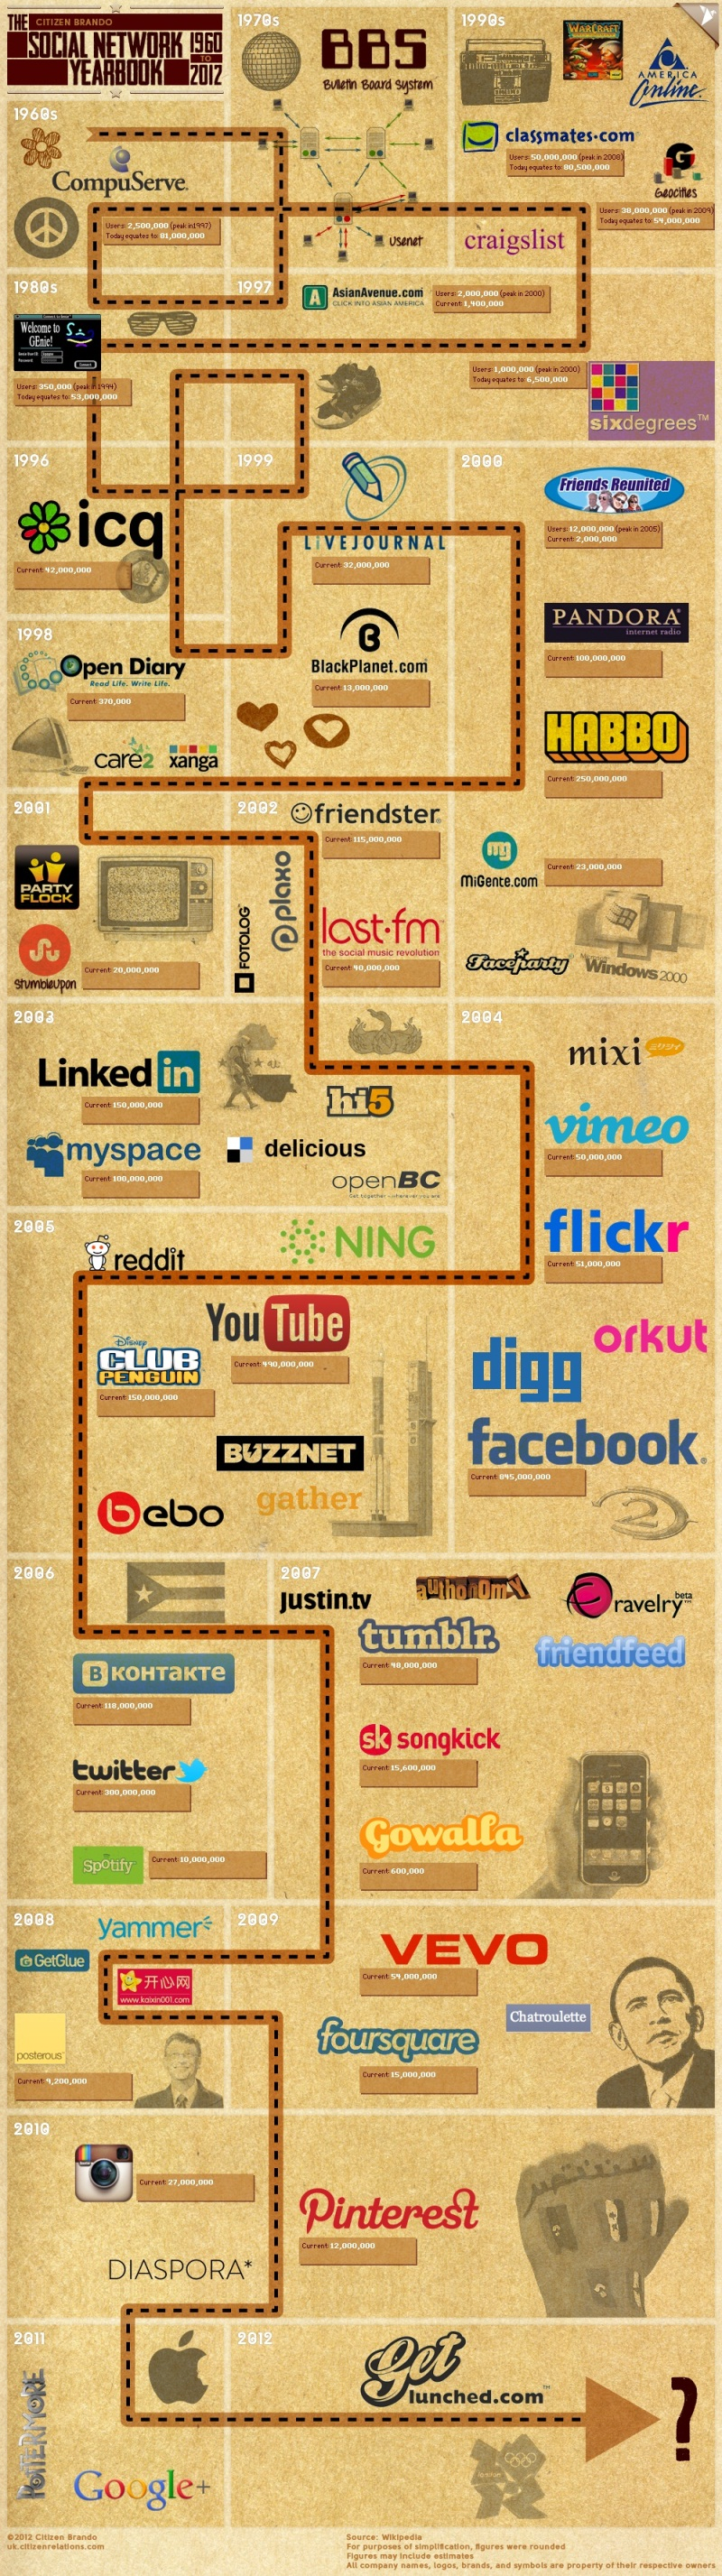 Social Networks [INFOGRAPHIC]